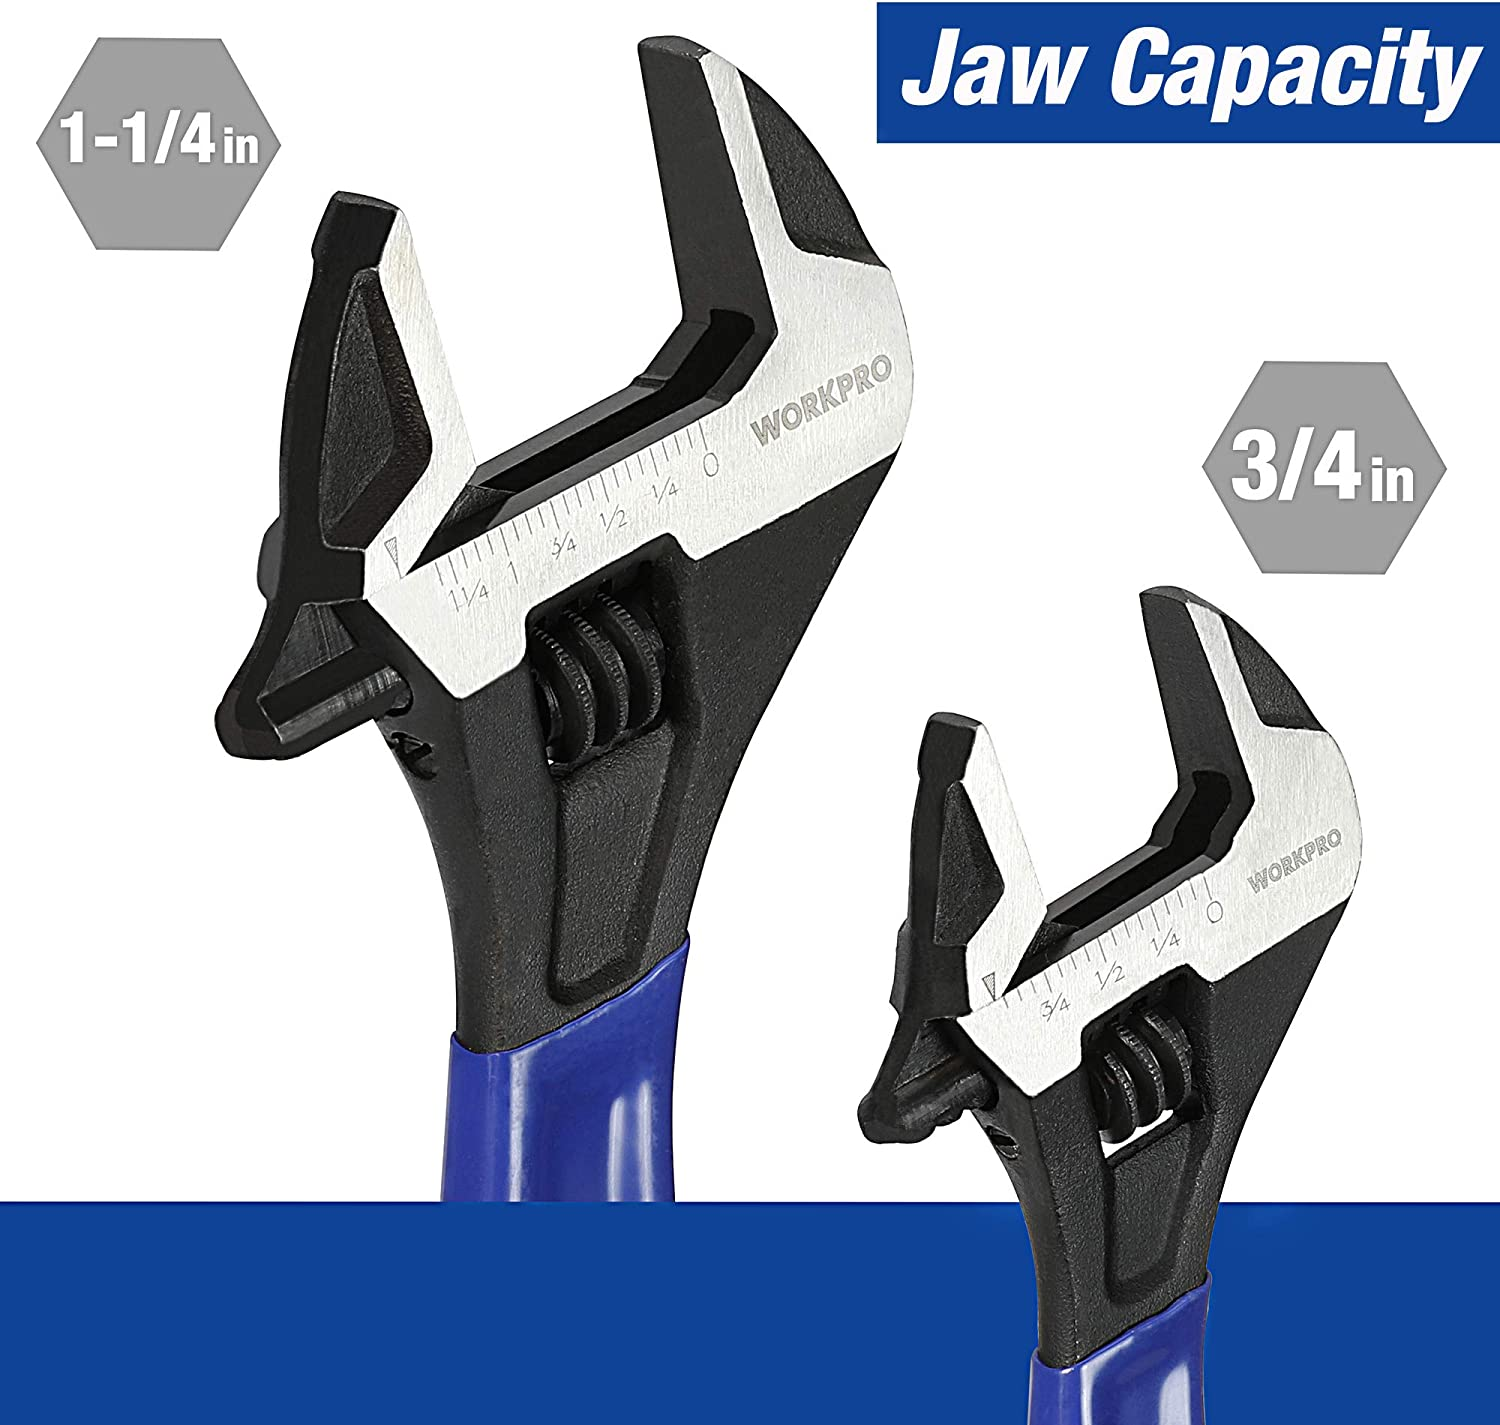 Extra-Wide Jaw Black Oxide Wrench 6-Inch /& 10-Inch Workshop Garage WORKPRO 2-piece Adjustable Wrench Set Mechanic and DIY for Home Metric /& SAE Scales Cushion Grip Wrench Construction Worker